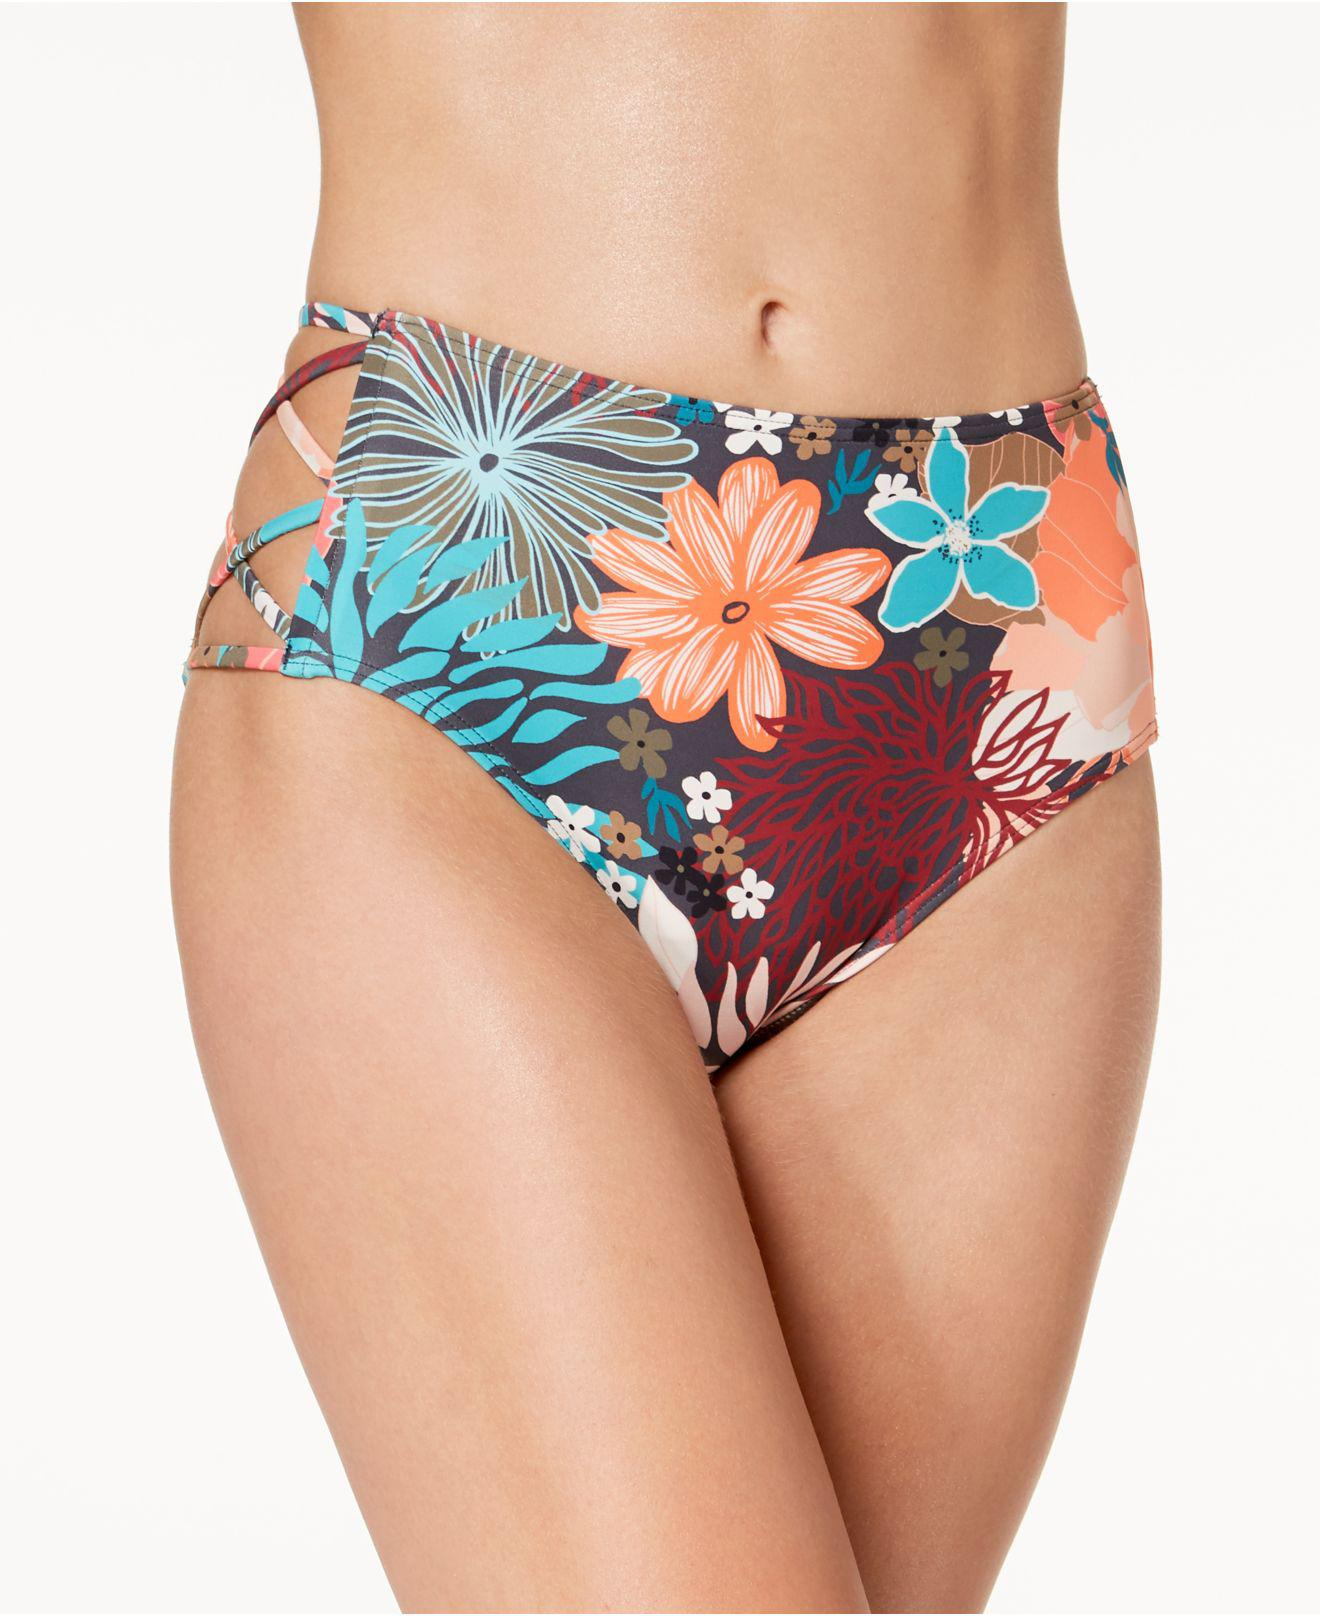 51ad9ccc31 Gallery. Previously sold at  Macy s · Women s High Waisted Bikini Bottoms  ...